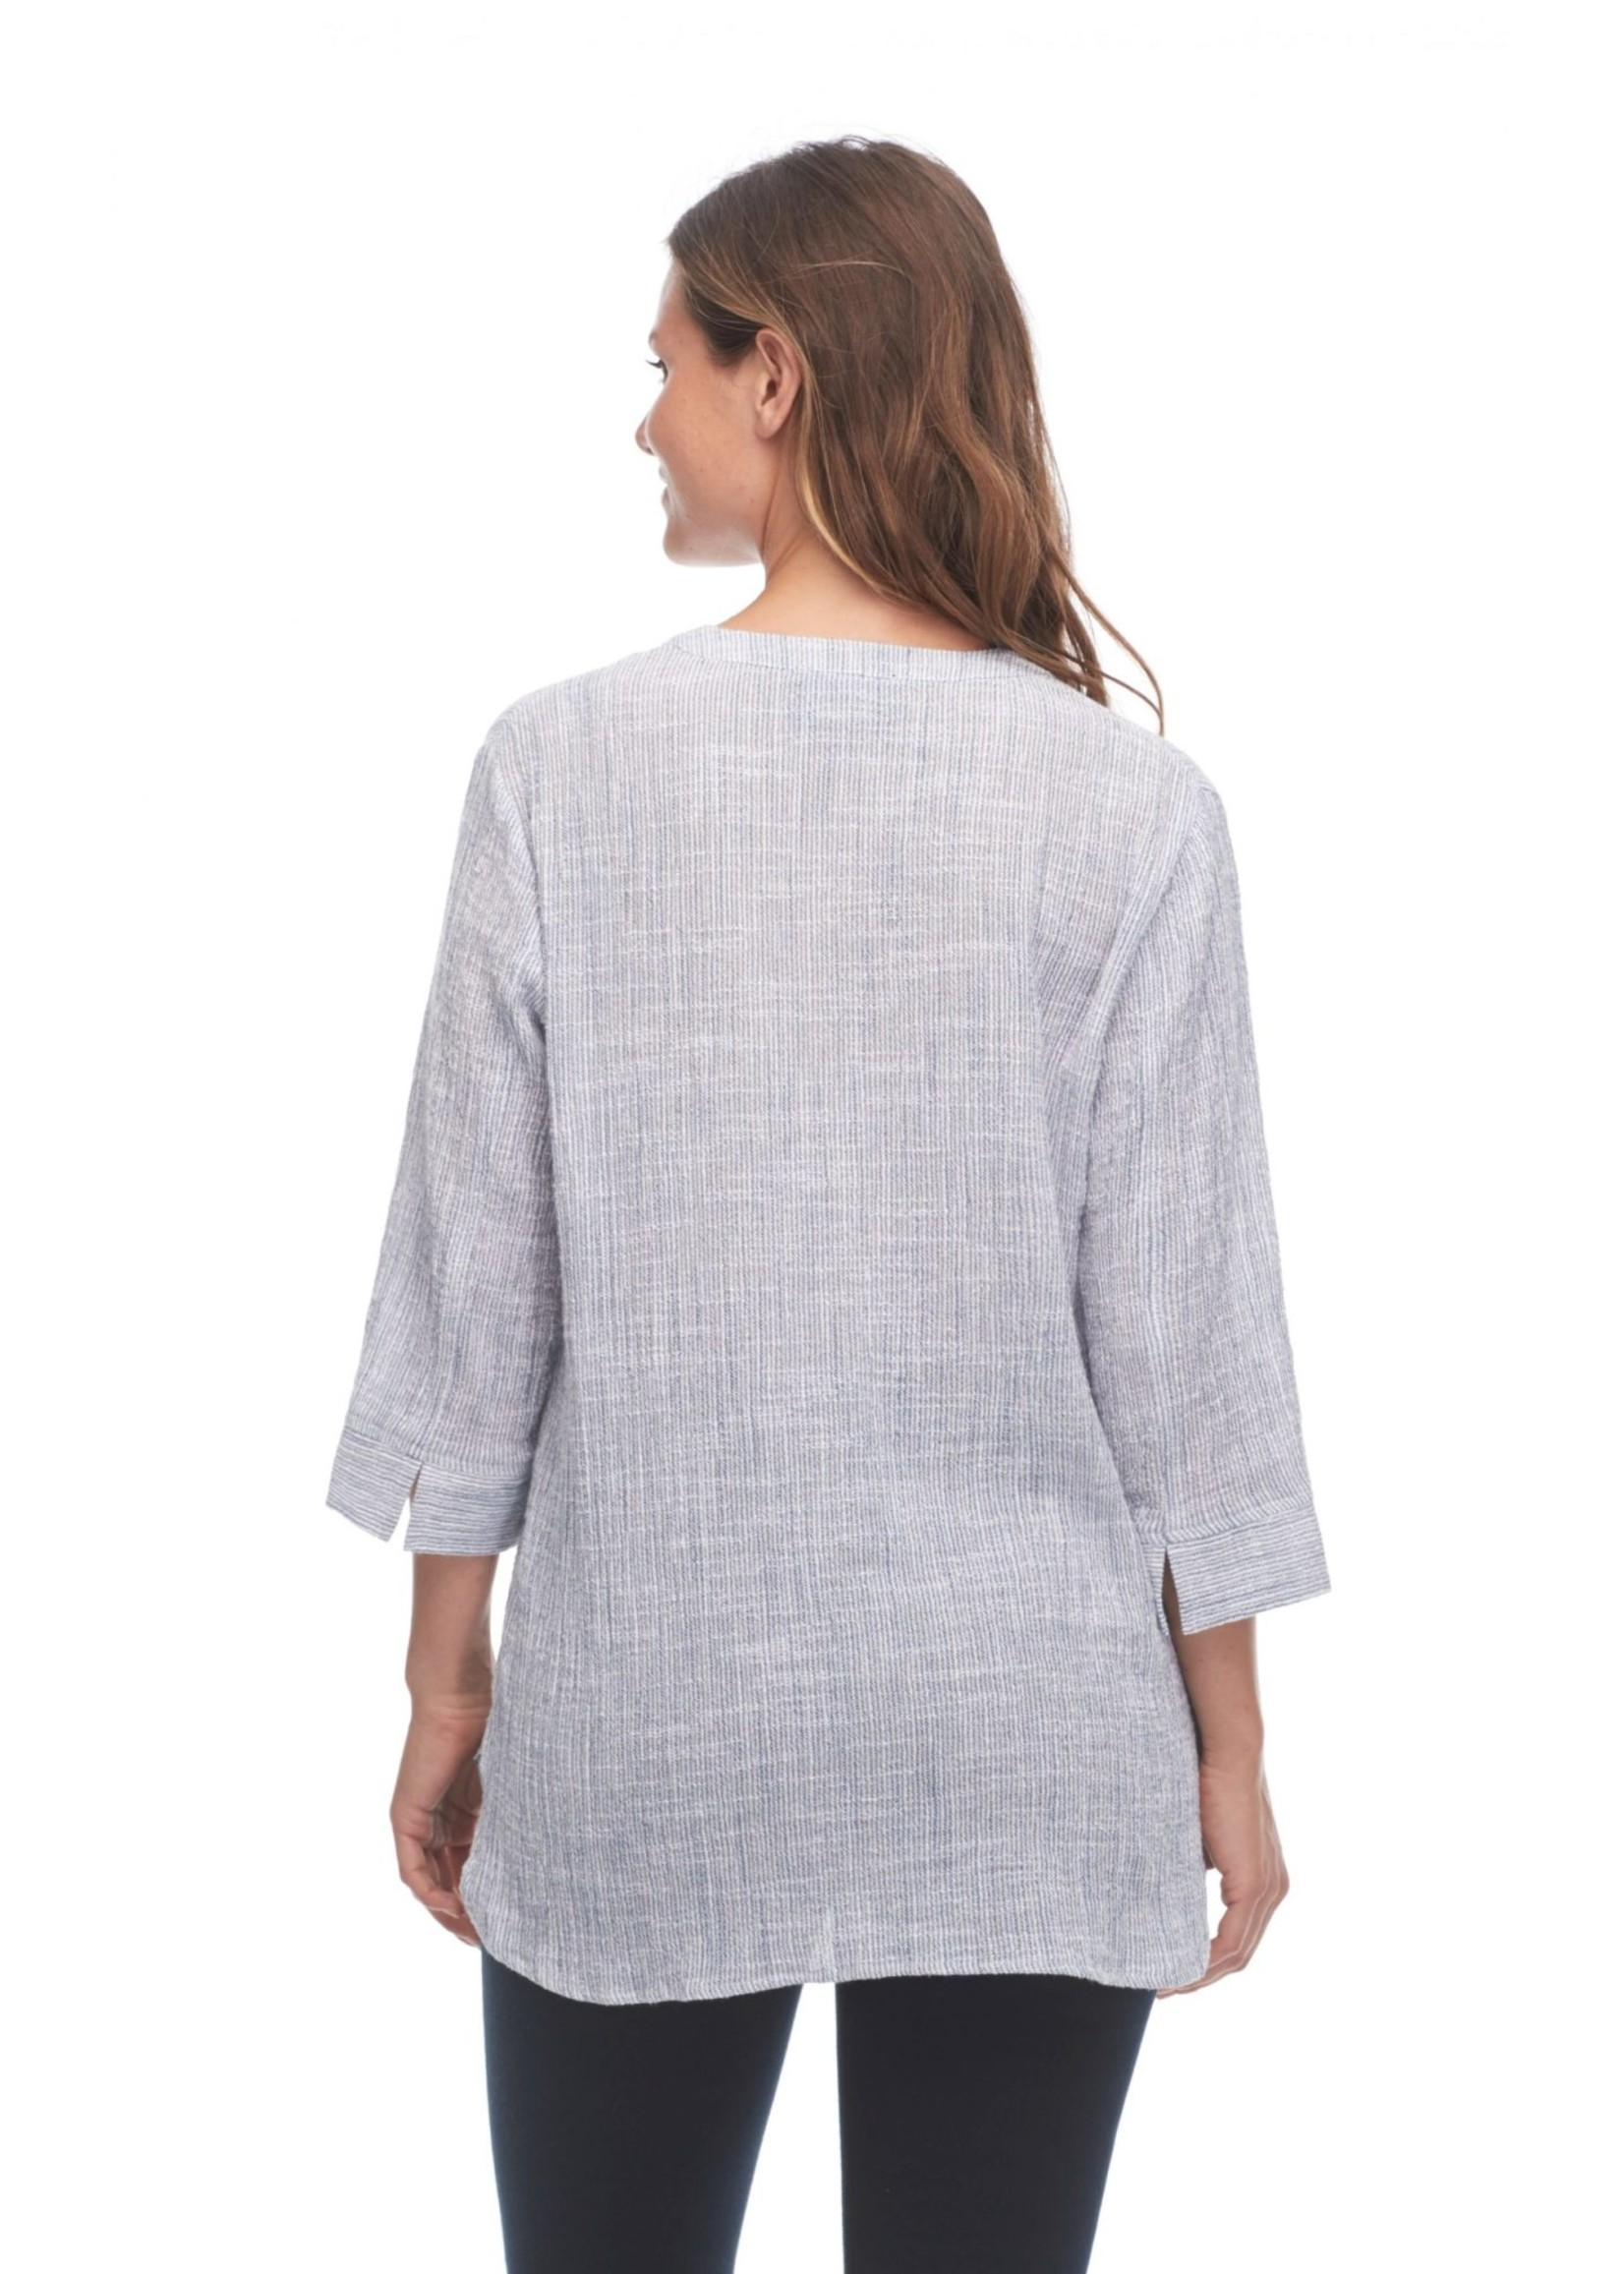 FDJ Crinkled Stripe Tunic Blouse With 3/4 Sleeves